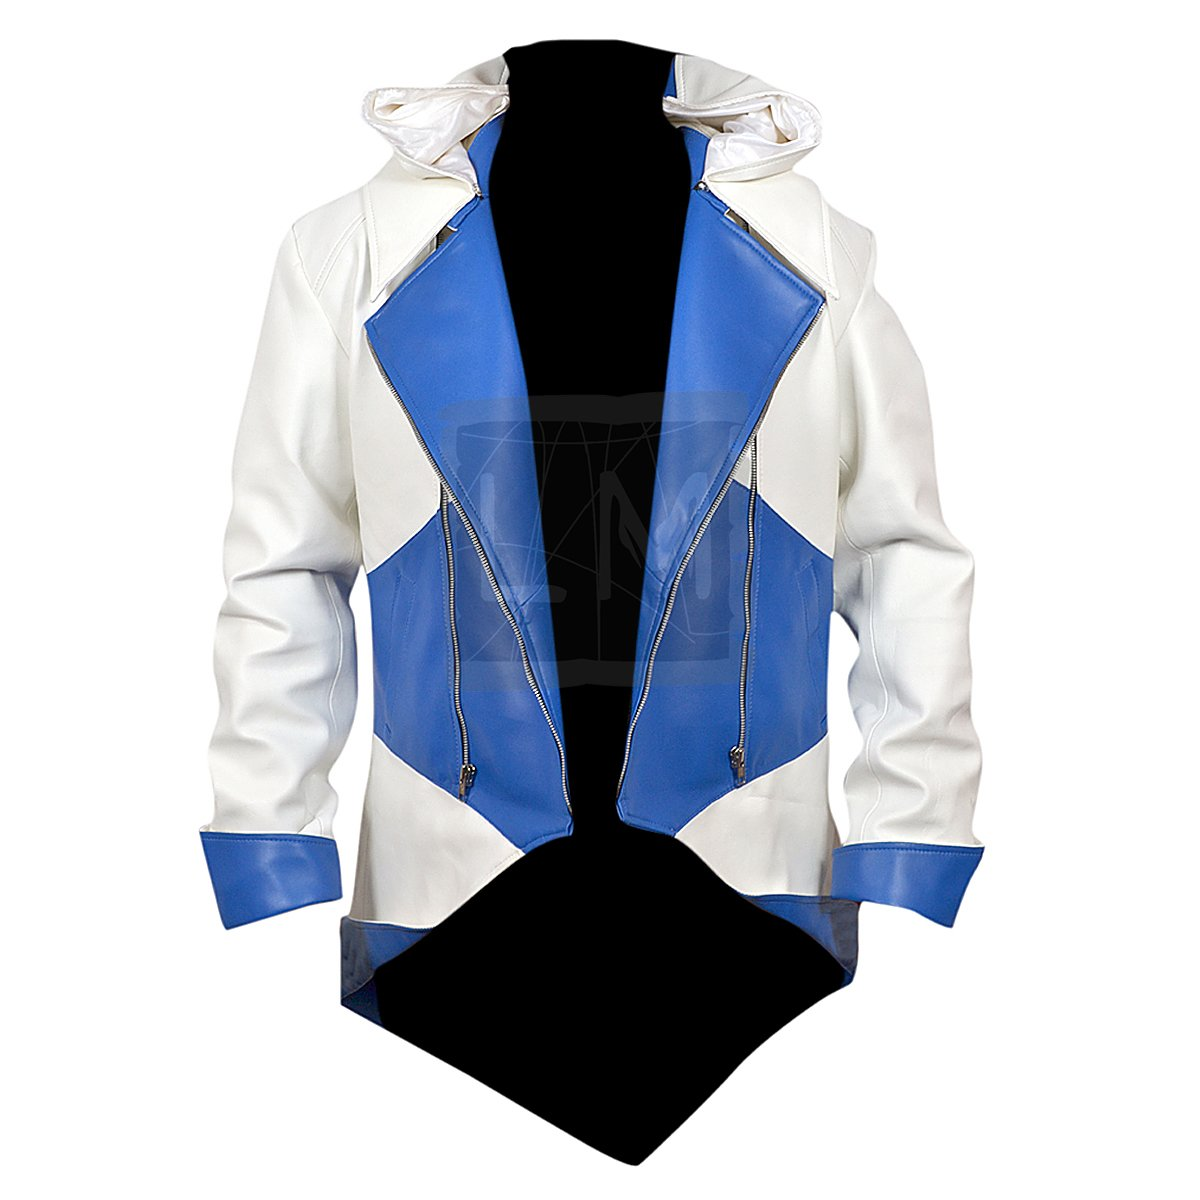 Assassins Creed 3 White and Blue Faux PU Leather Jacket - Leather